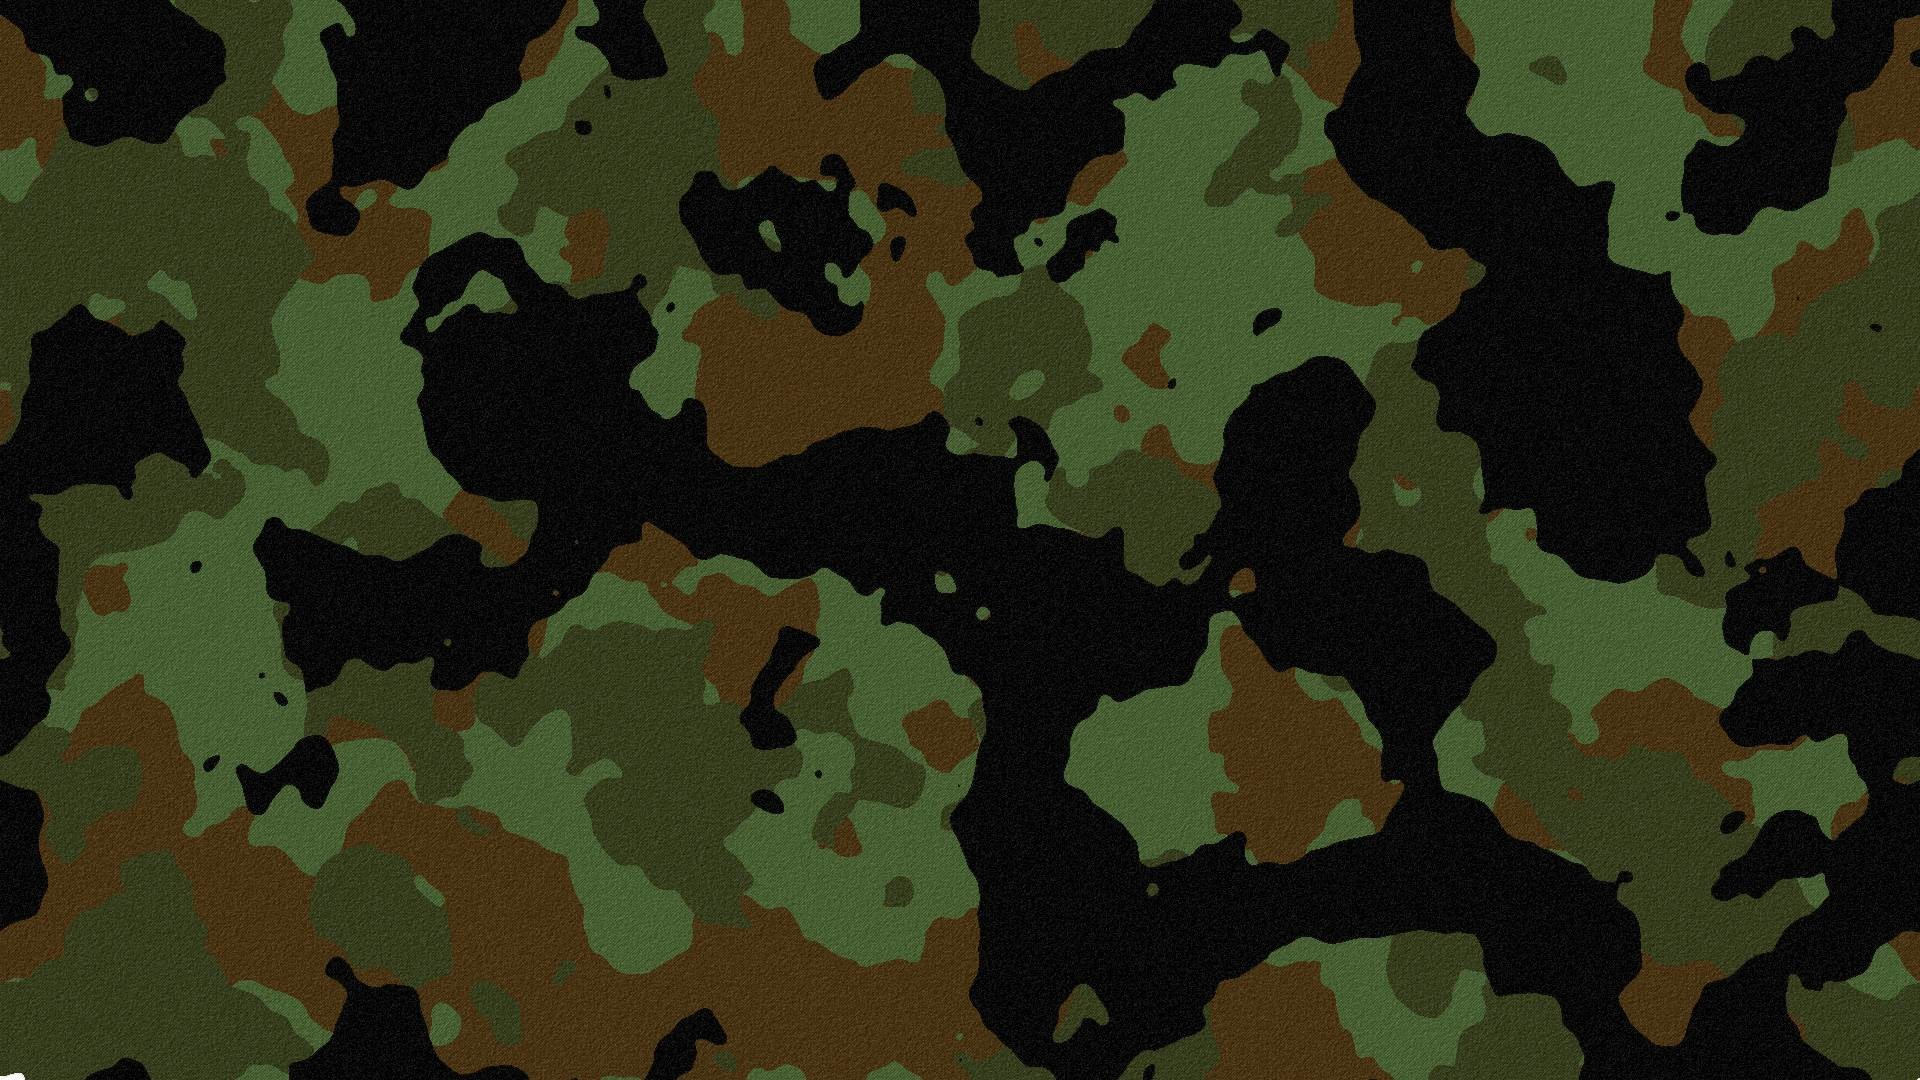 Military Khaki Camouflage Patters   Background and Texture